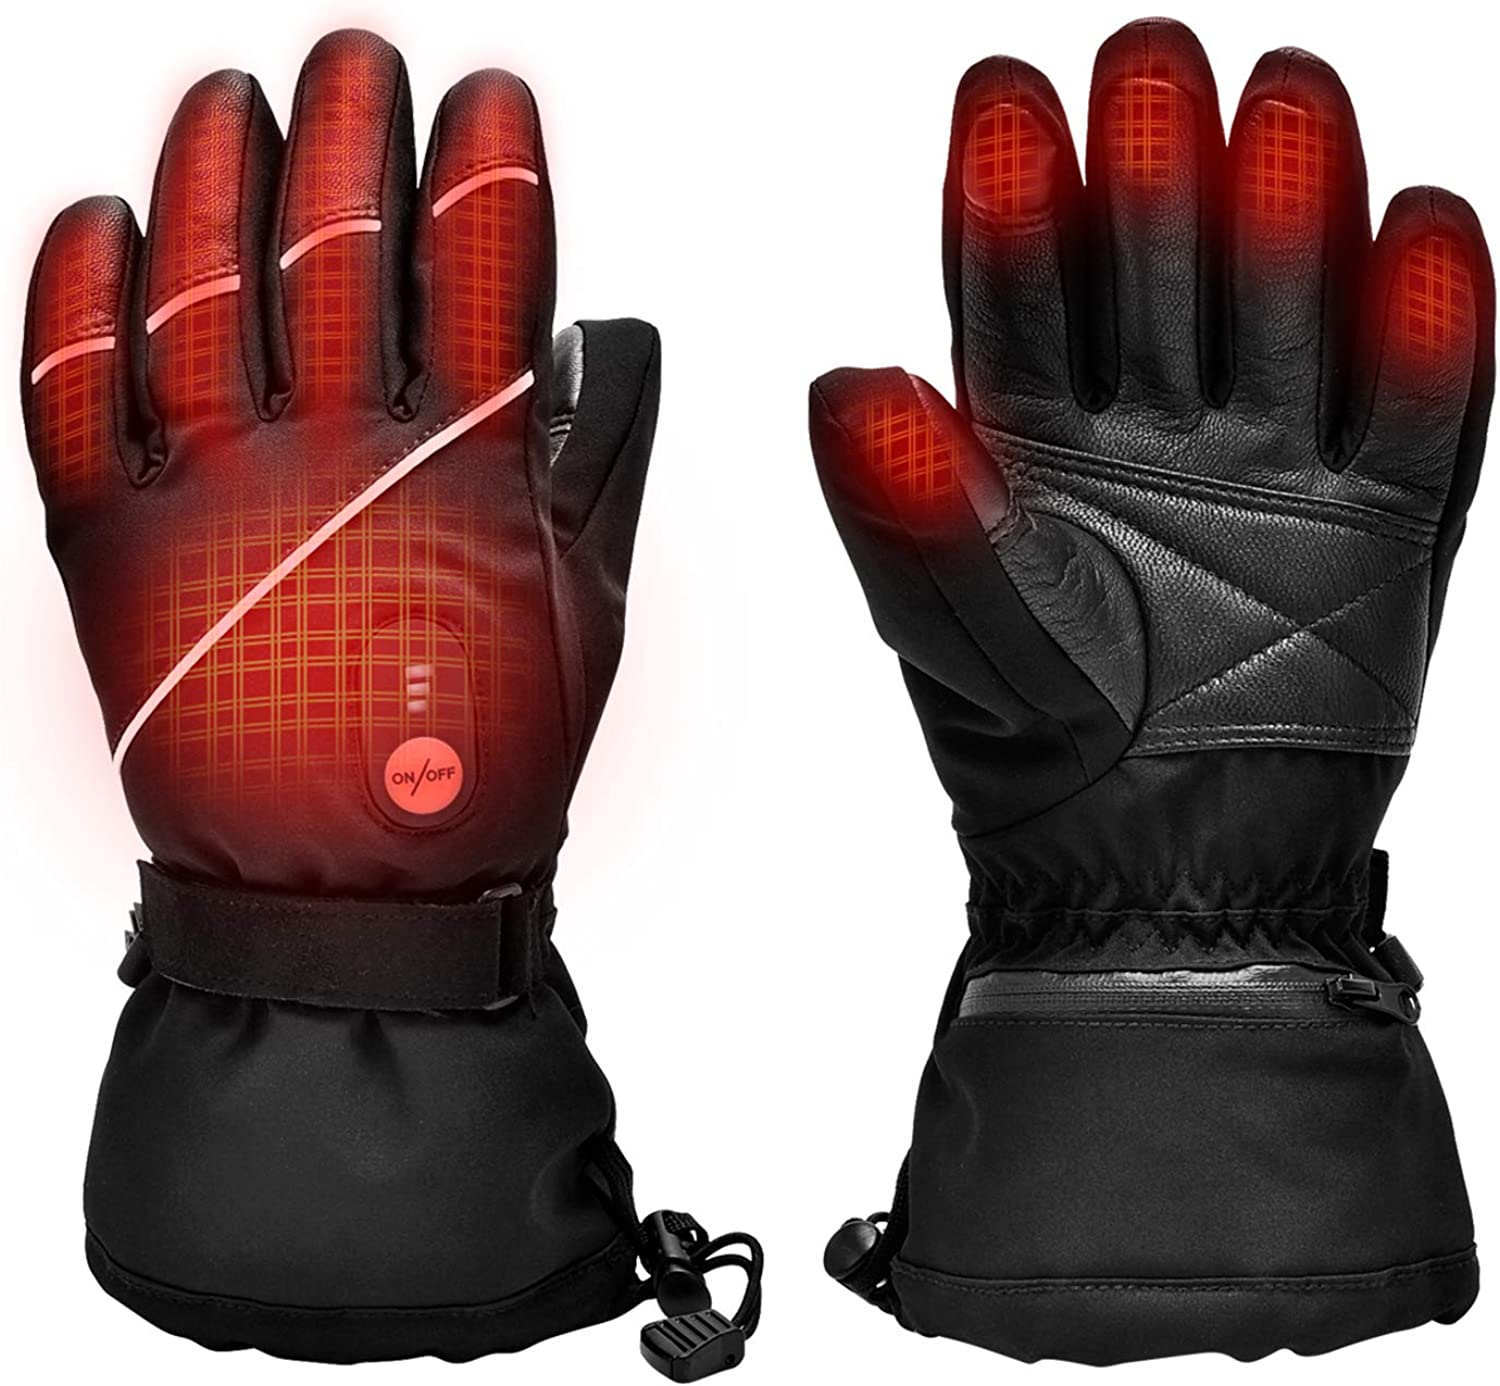 Upgraded Heated Gloves for Men Women,Electric Ski Motorcycle Snow Mitten Glove Arthritis